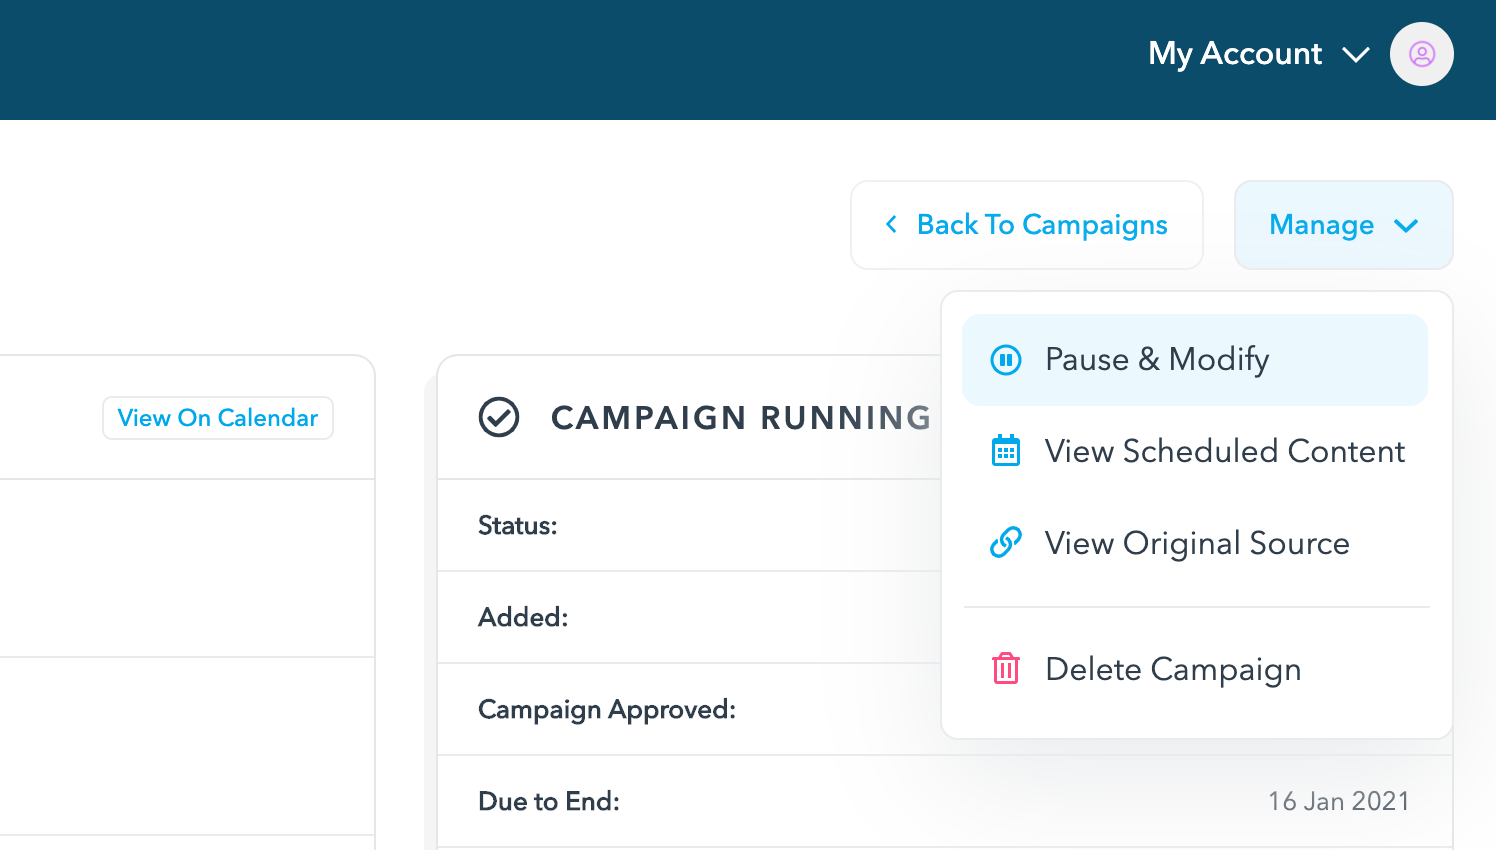 Campaign action buttons on the detail page